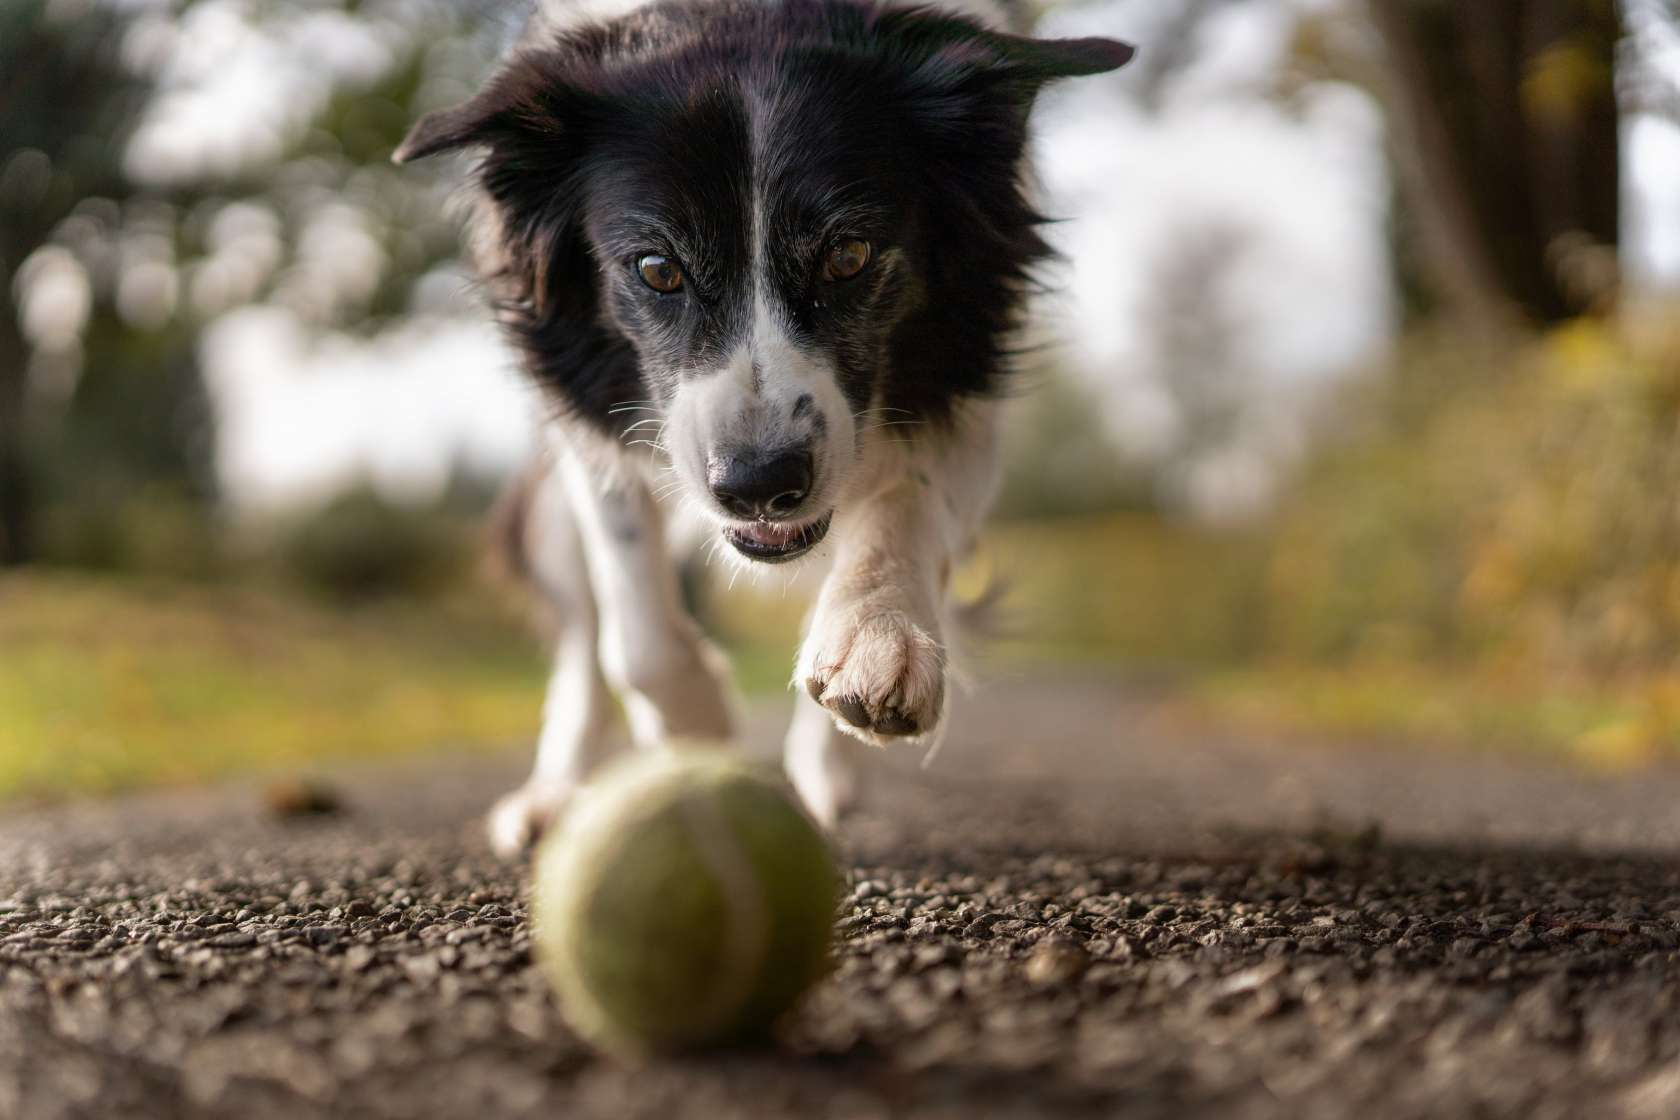 black and white dog chasing tennis ball